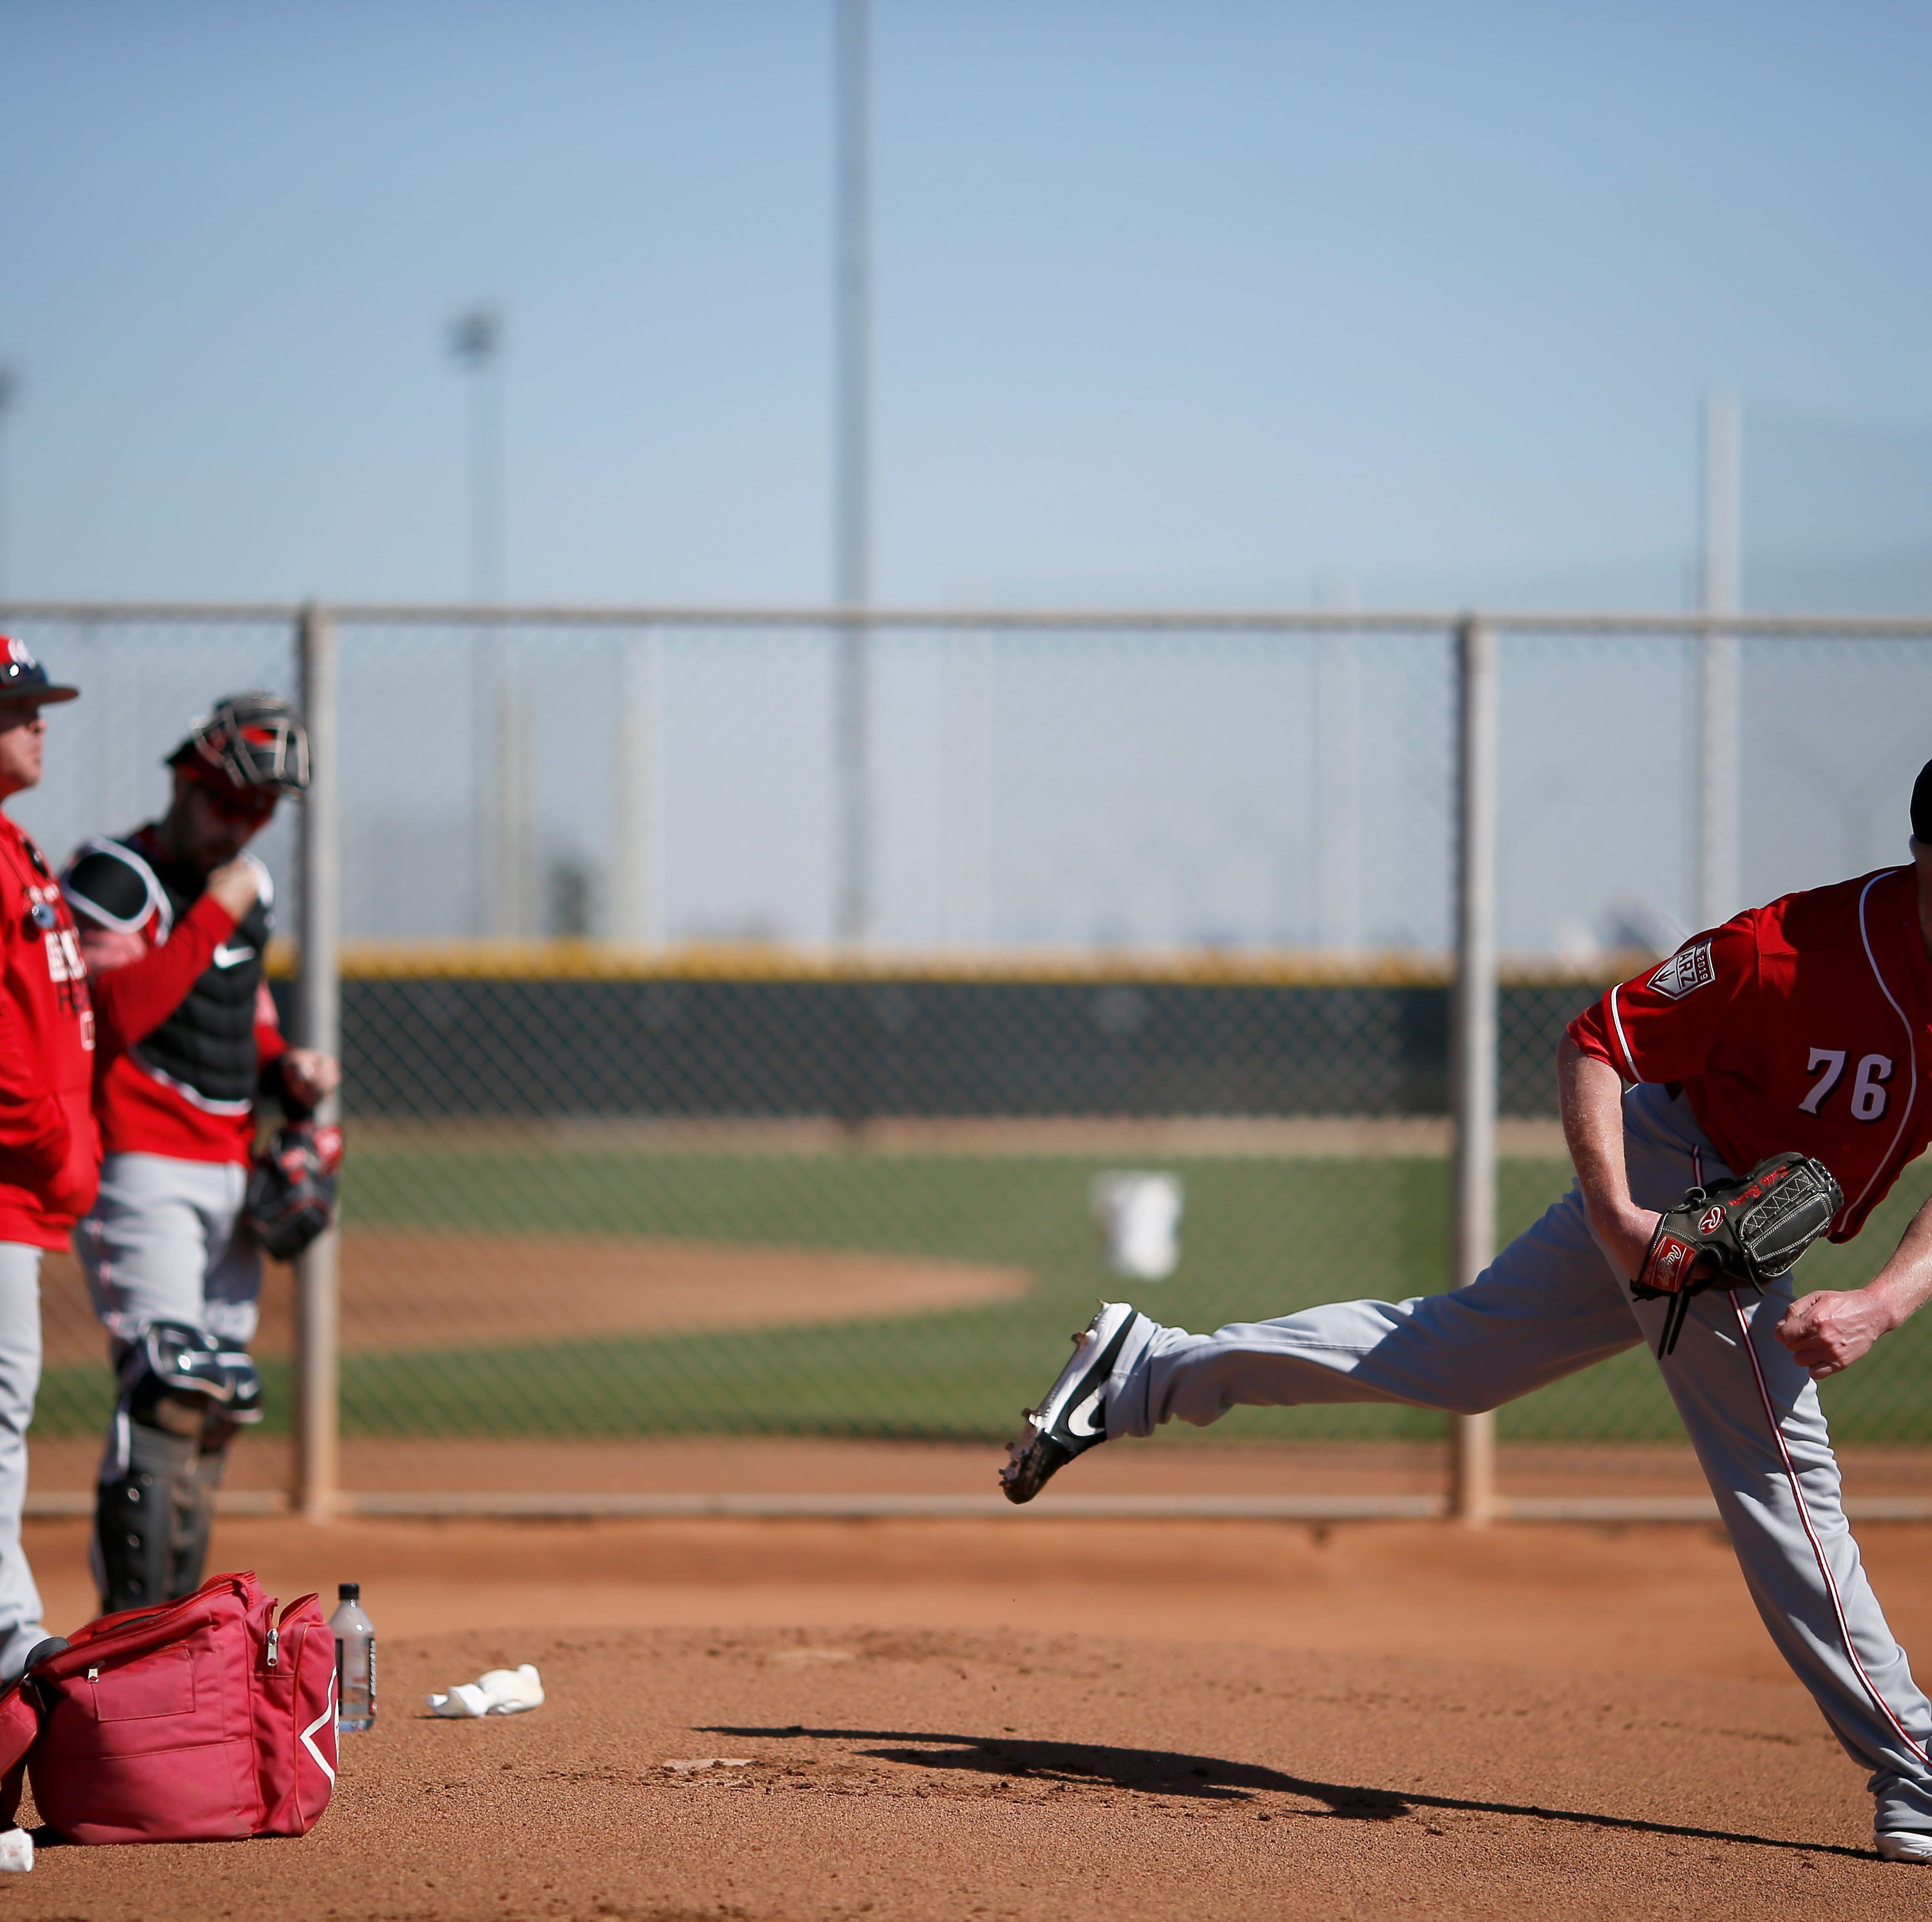 FOX Sports Ohio to broadcast all 162 Cincinnati Reds games, 10 from Spring Training